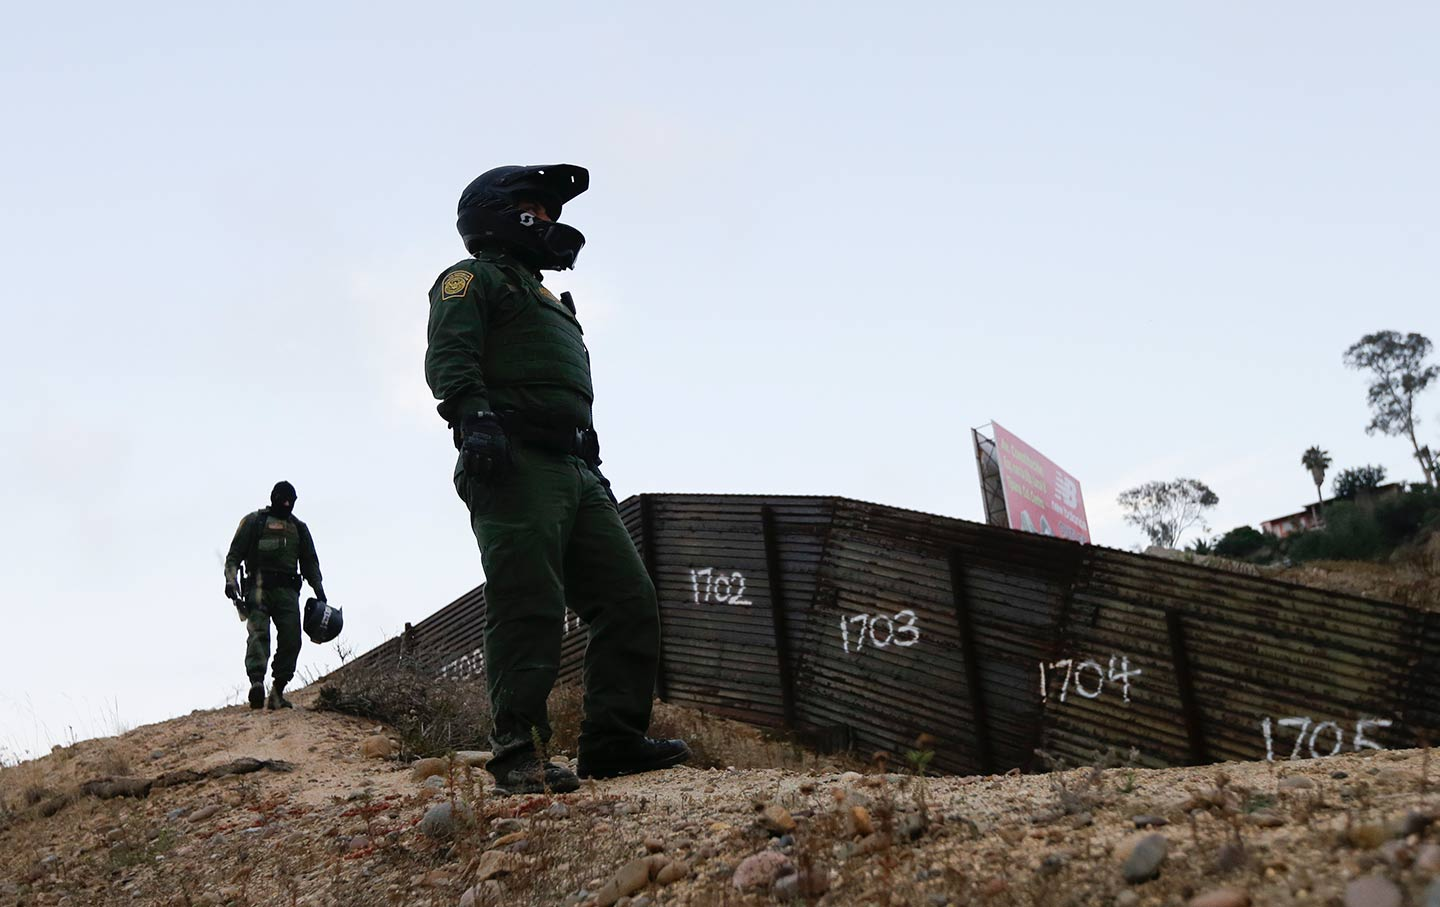 Articles on Border security